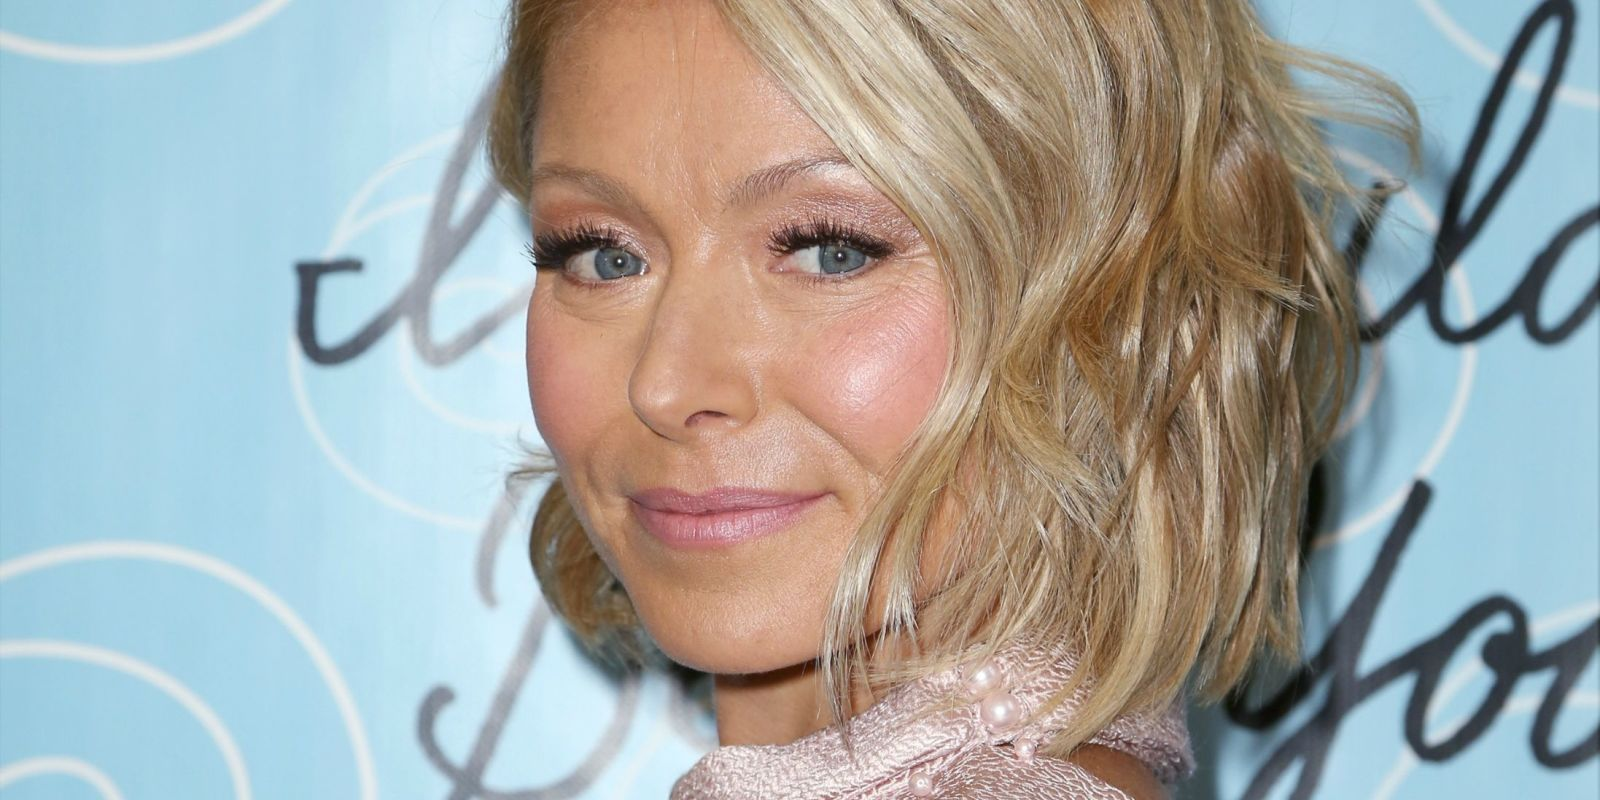 kelly ripa dyes hair blue - kelly ripa's new turquoise hair color